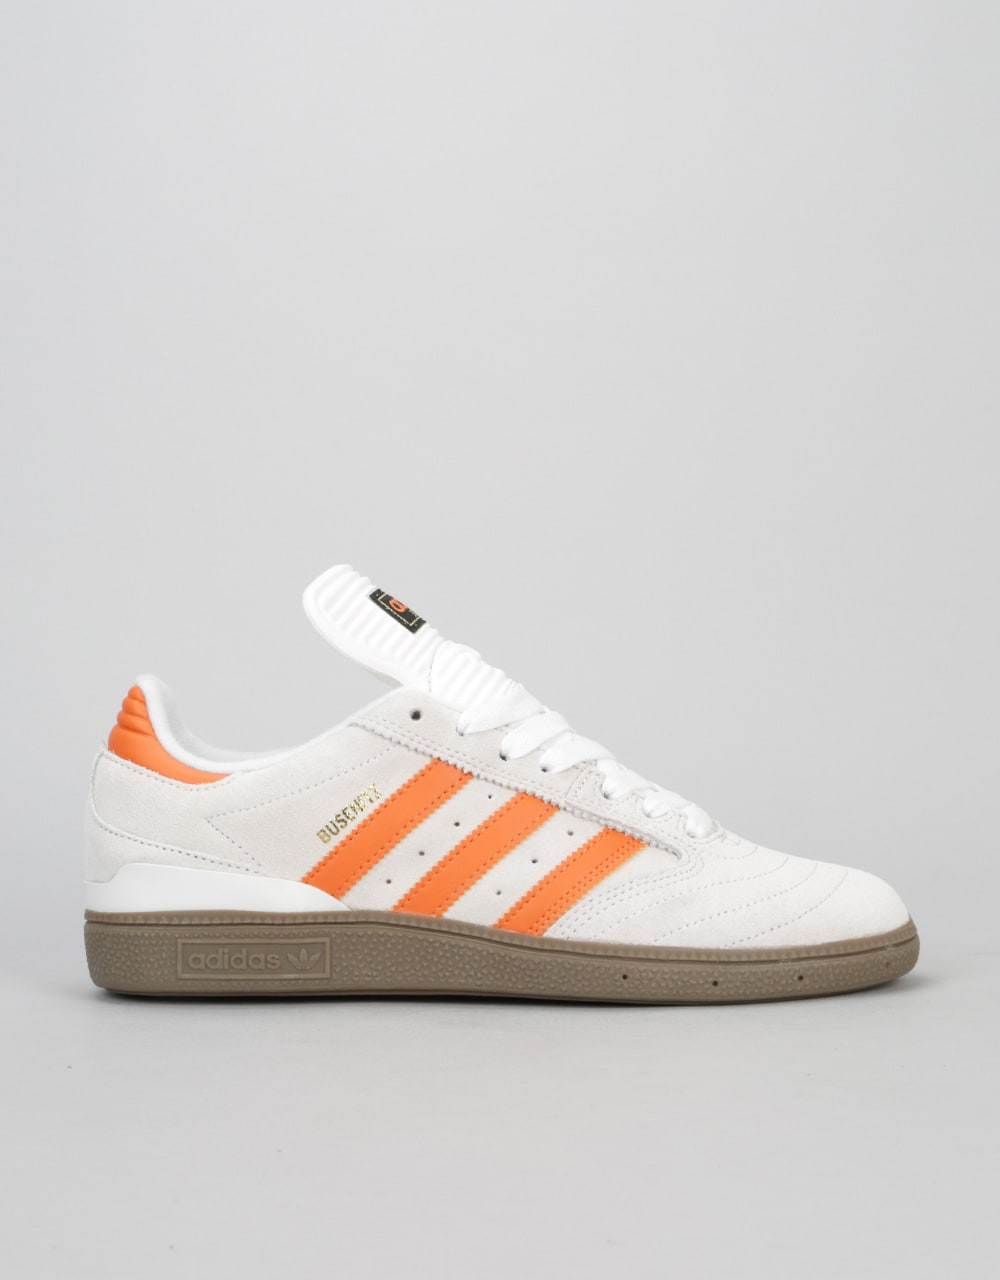 check out 7e02f e69e6 Adidas Busenitz Skate Shoes - Crystal WhiteCraft OrangeGum  Skate Shoes   Mens Skateboarding Trainers  Footwear  Route One